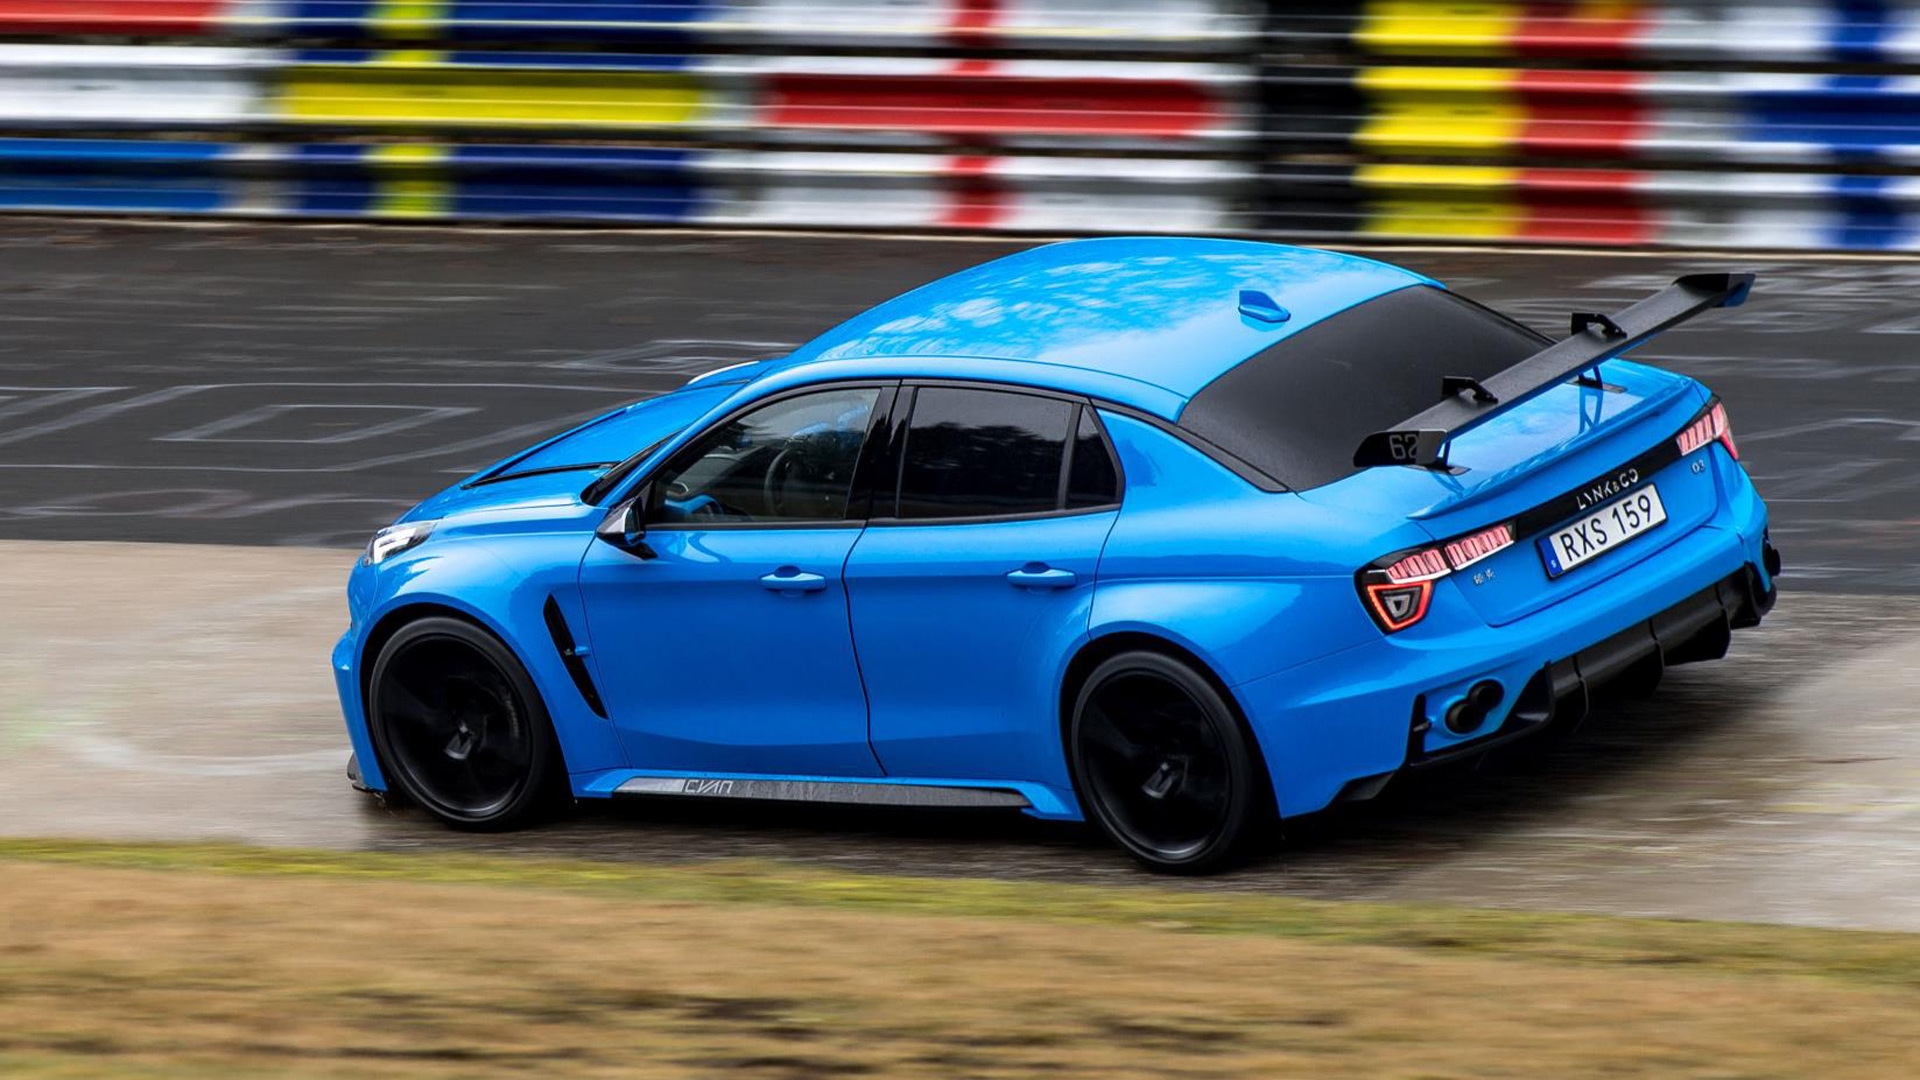 Lynk & Co. 03 Cyan Concept at the Nürburgring